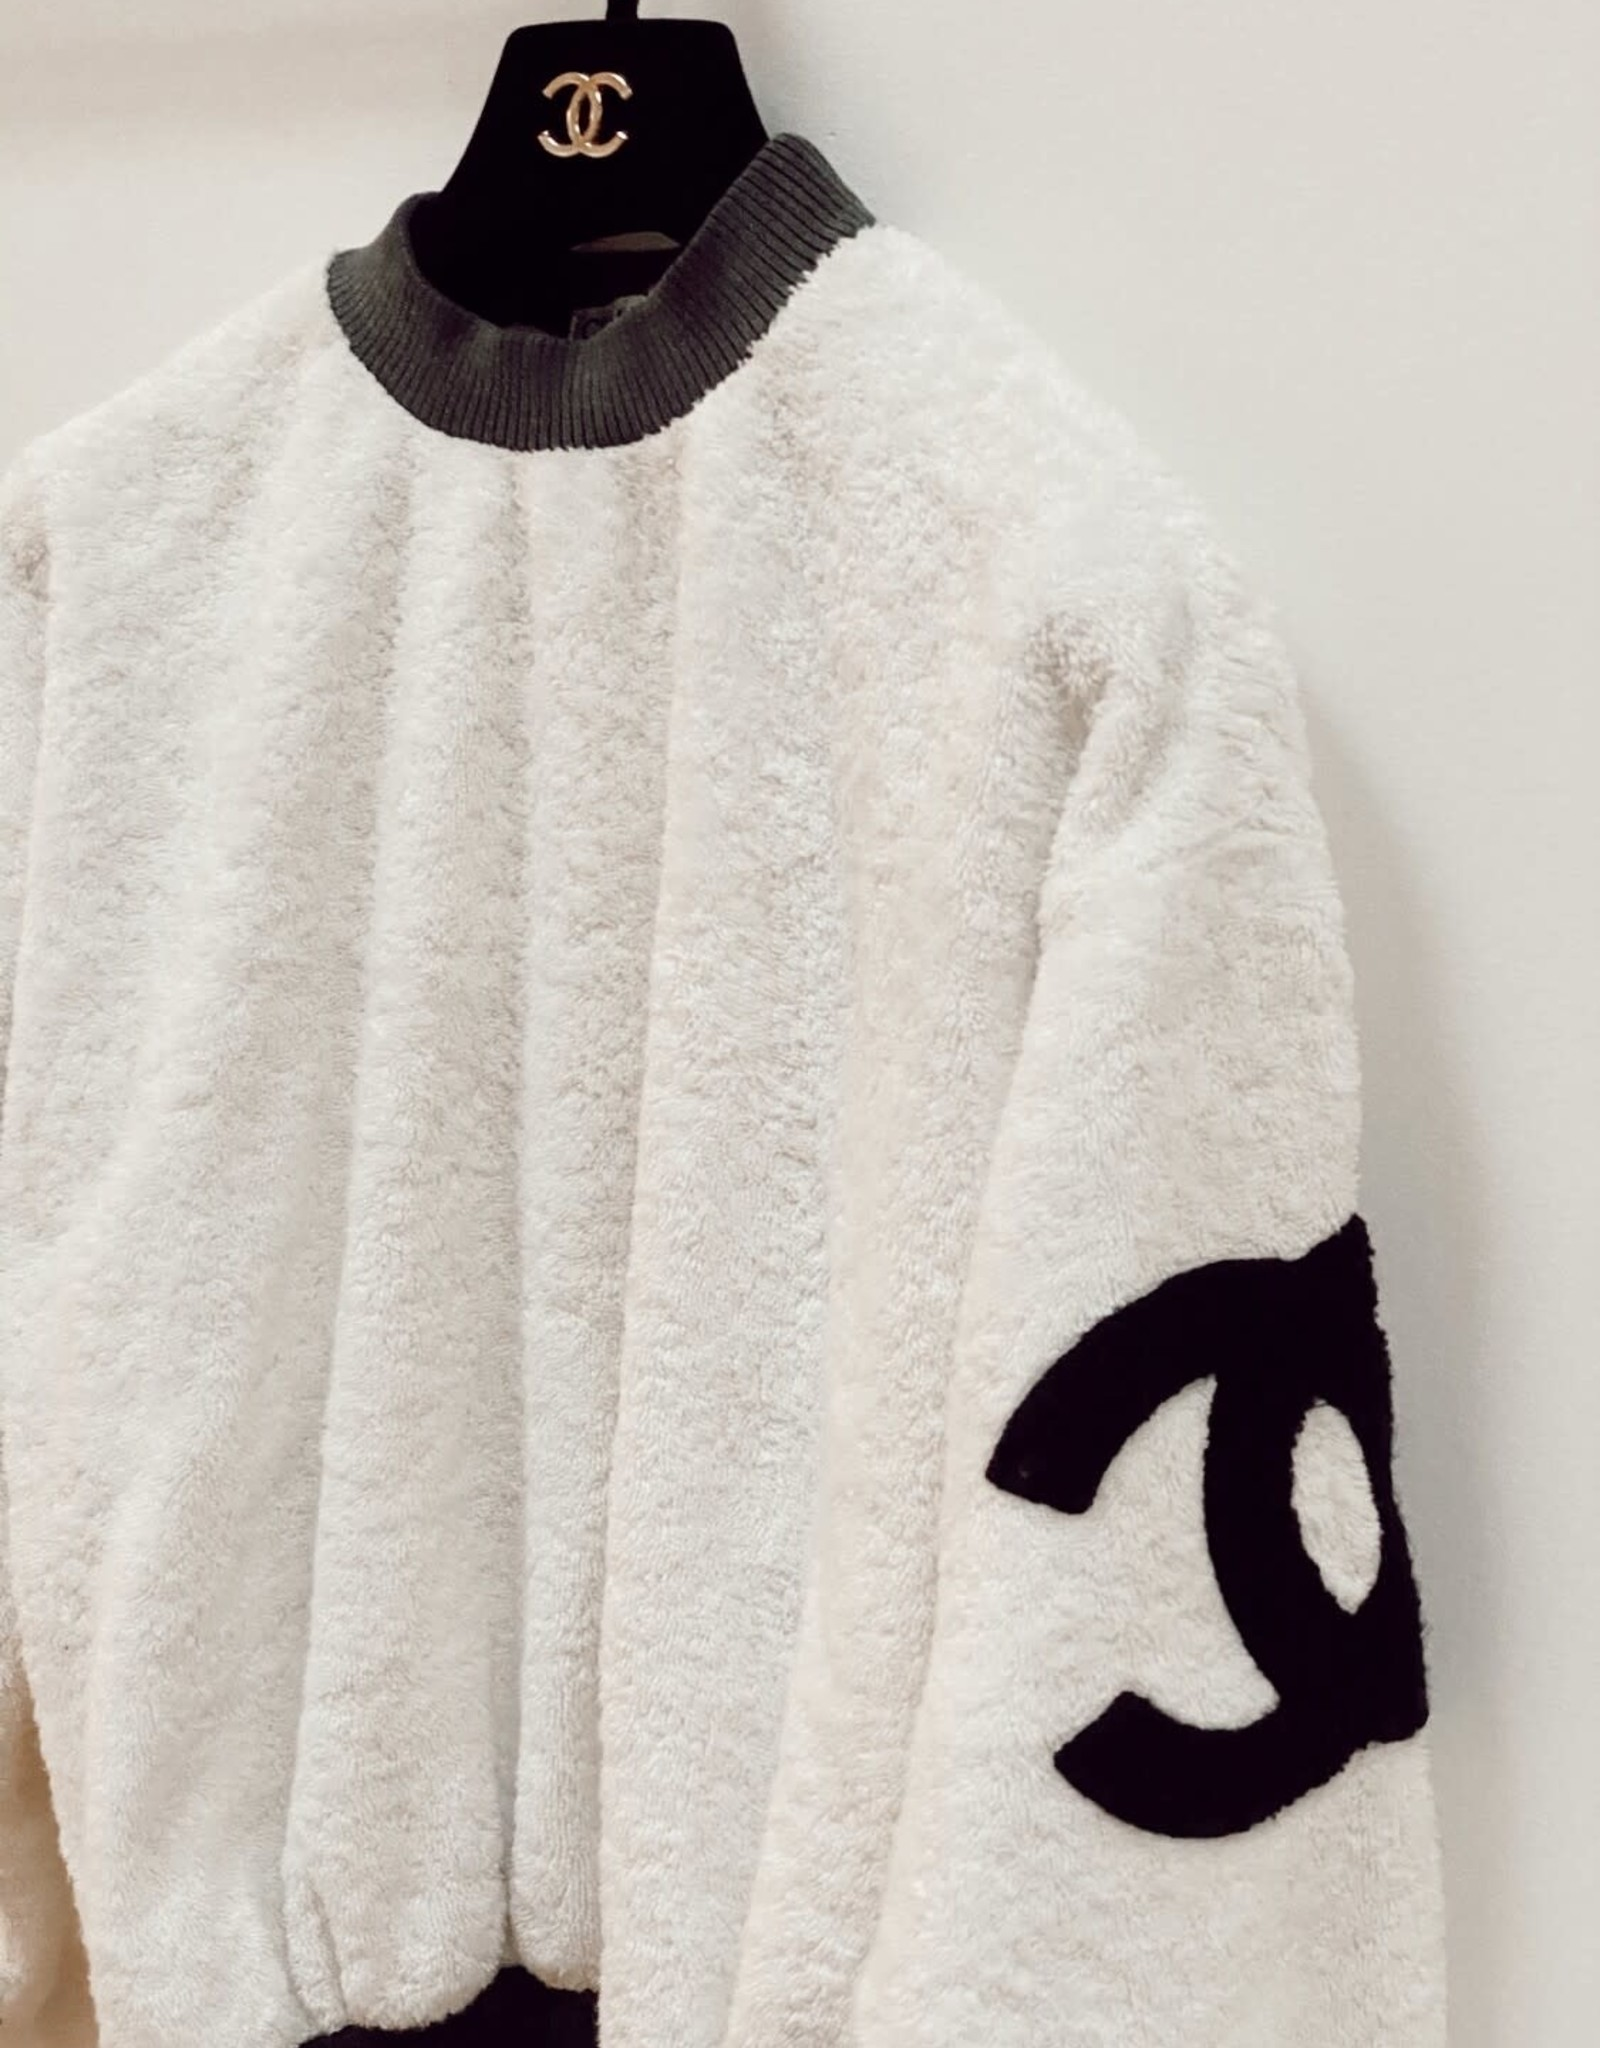 Wyld Blue Vintage Chanel Vintage Terrycloth CC Monogram Sweater Top